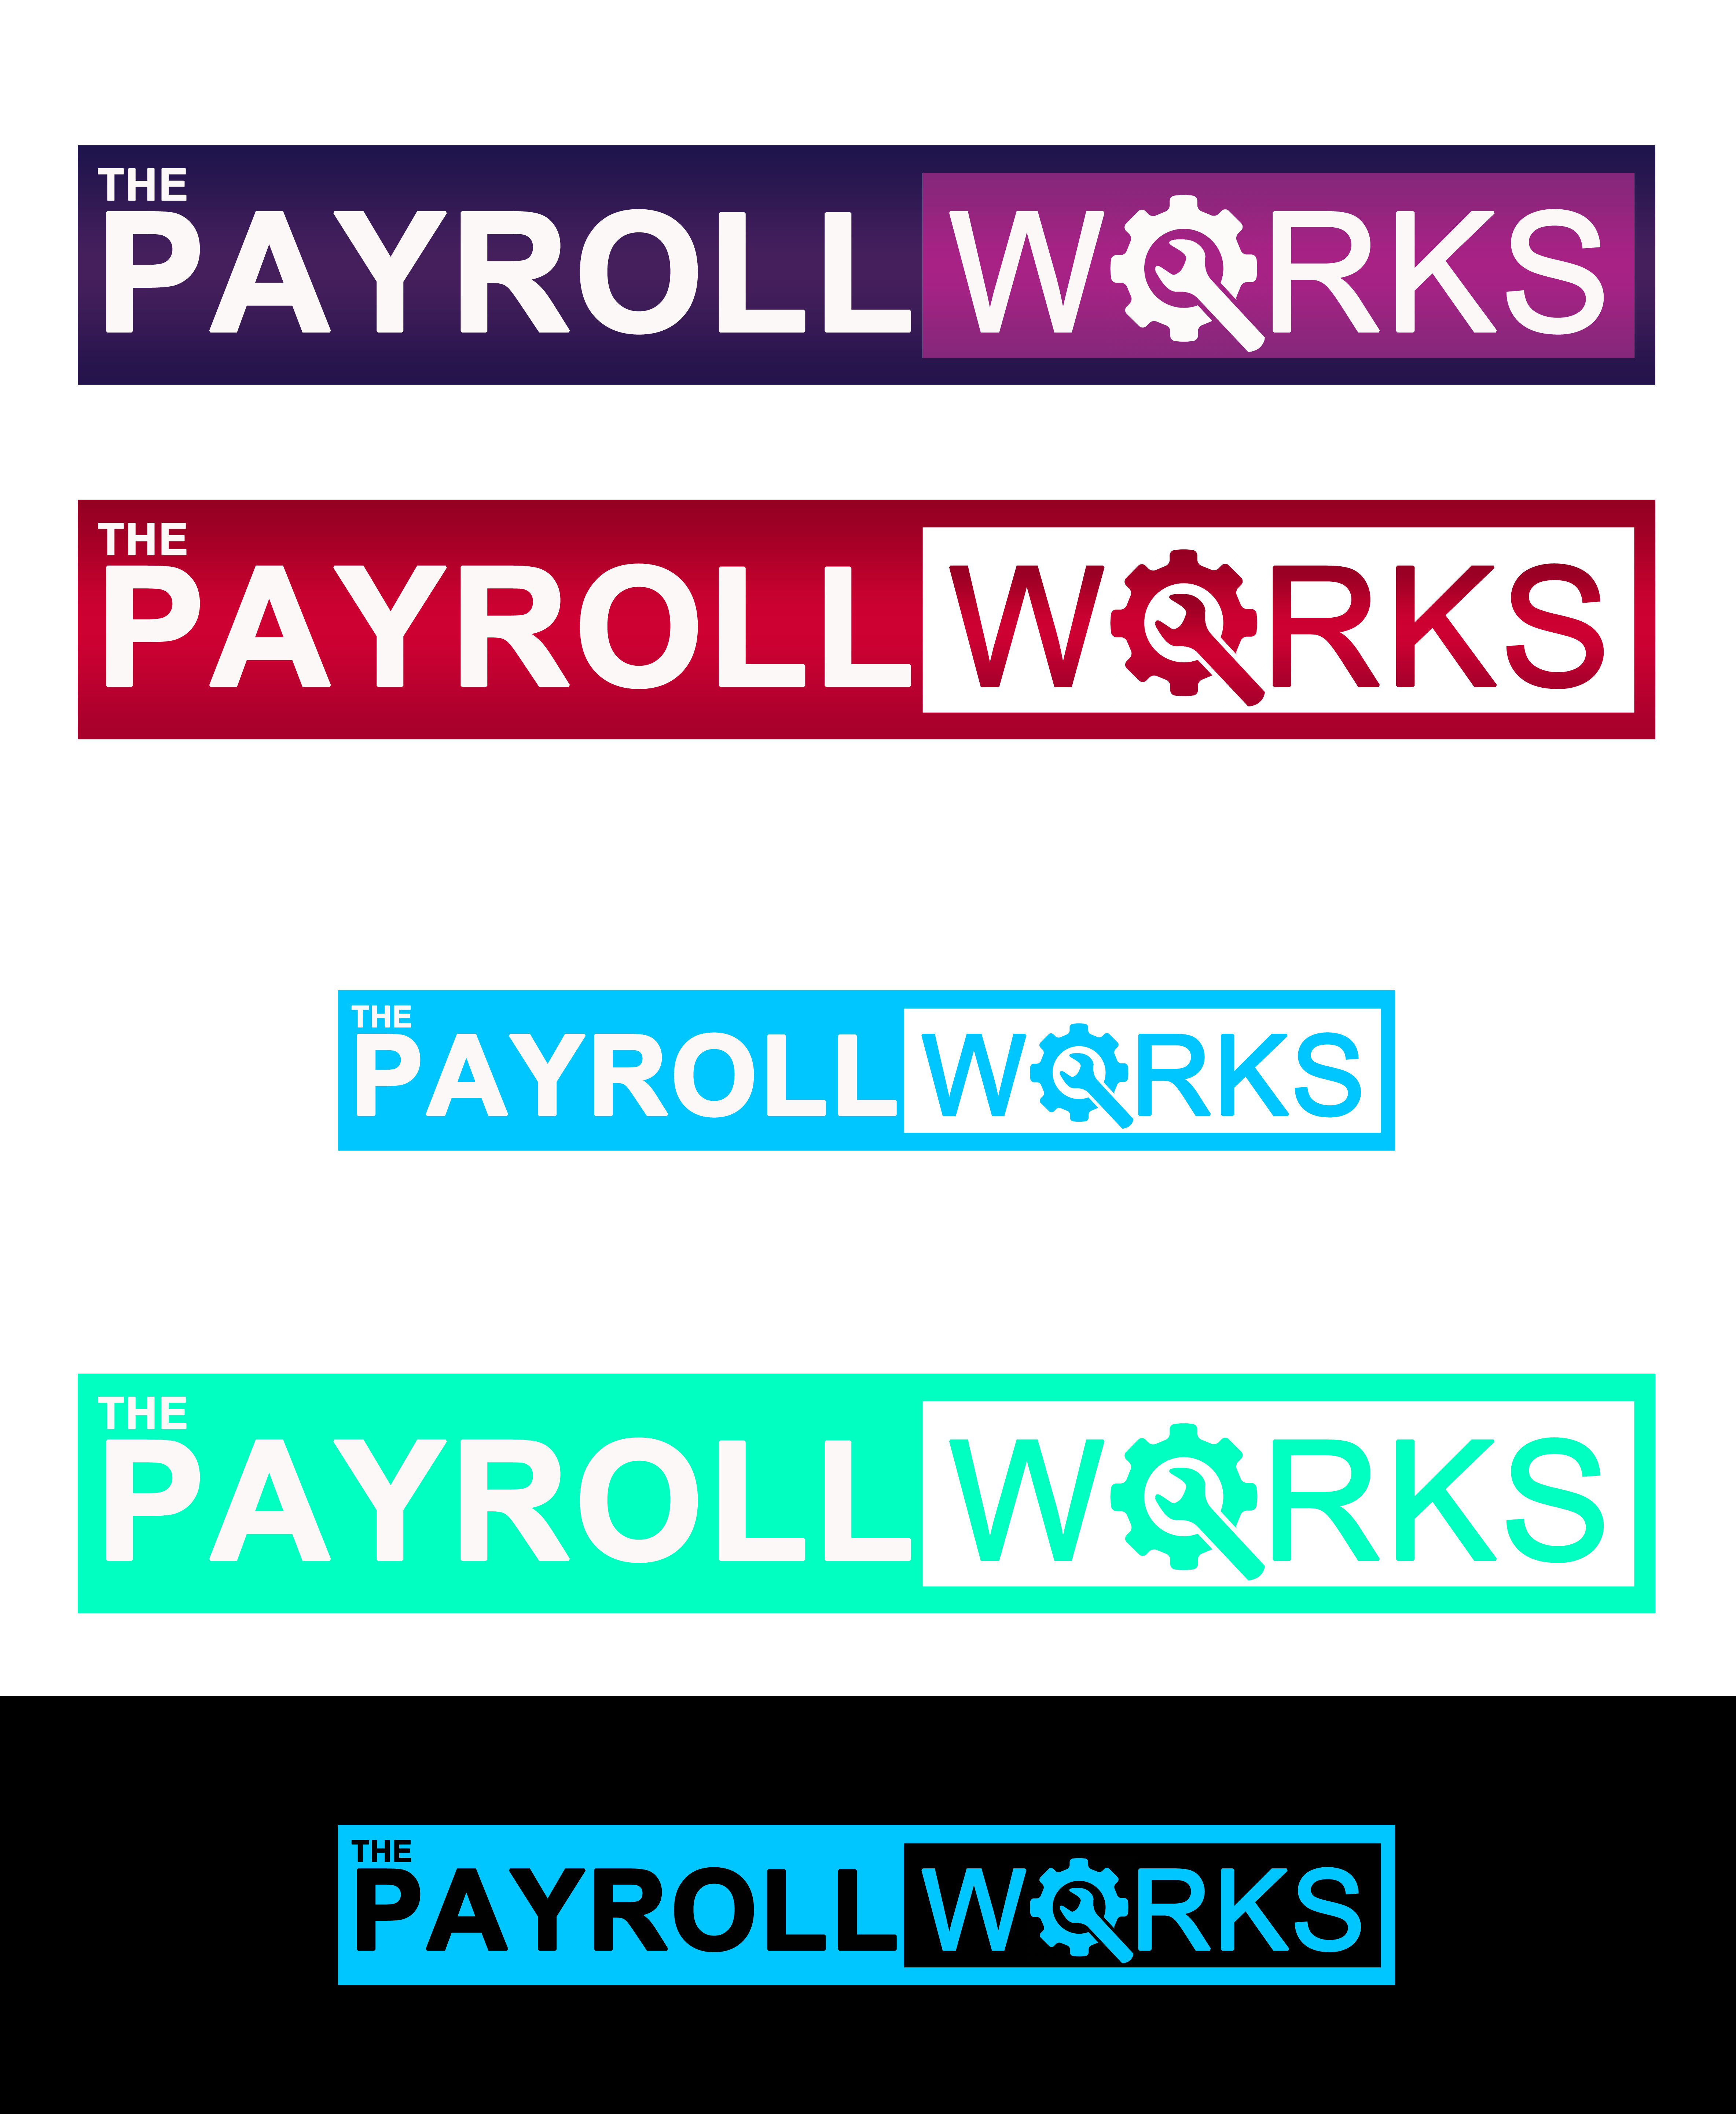 Logo Design by JSDESIGNGROUP - Entry No. 85 in the Logo Design Contest Captivating Logo Design for The Payroll Works.